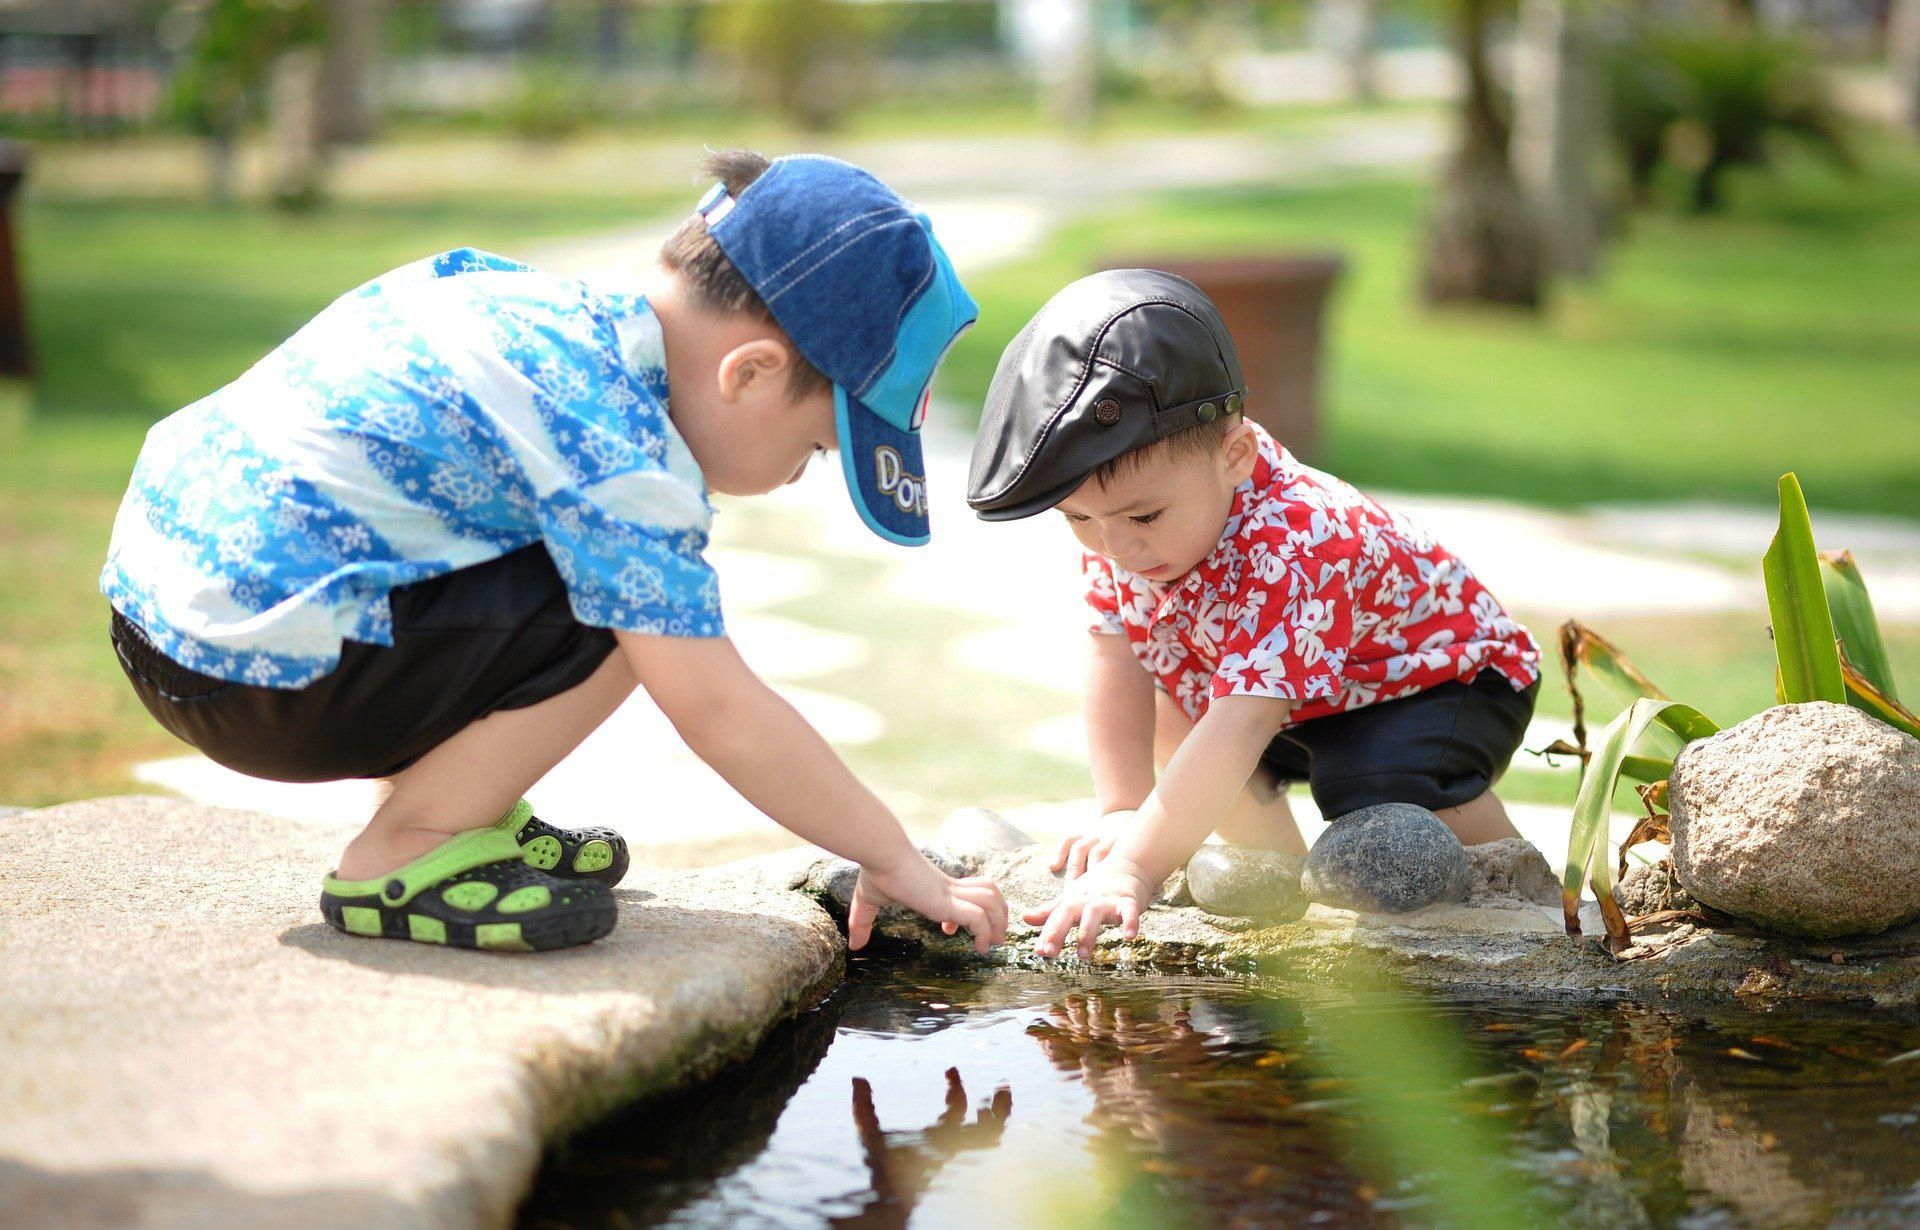 Exposing Kids To Nature Is The Best Way To Get Their Creative Juices Flowing